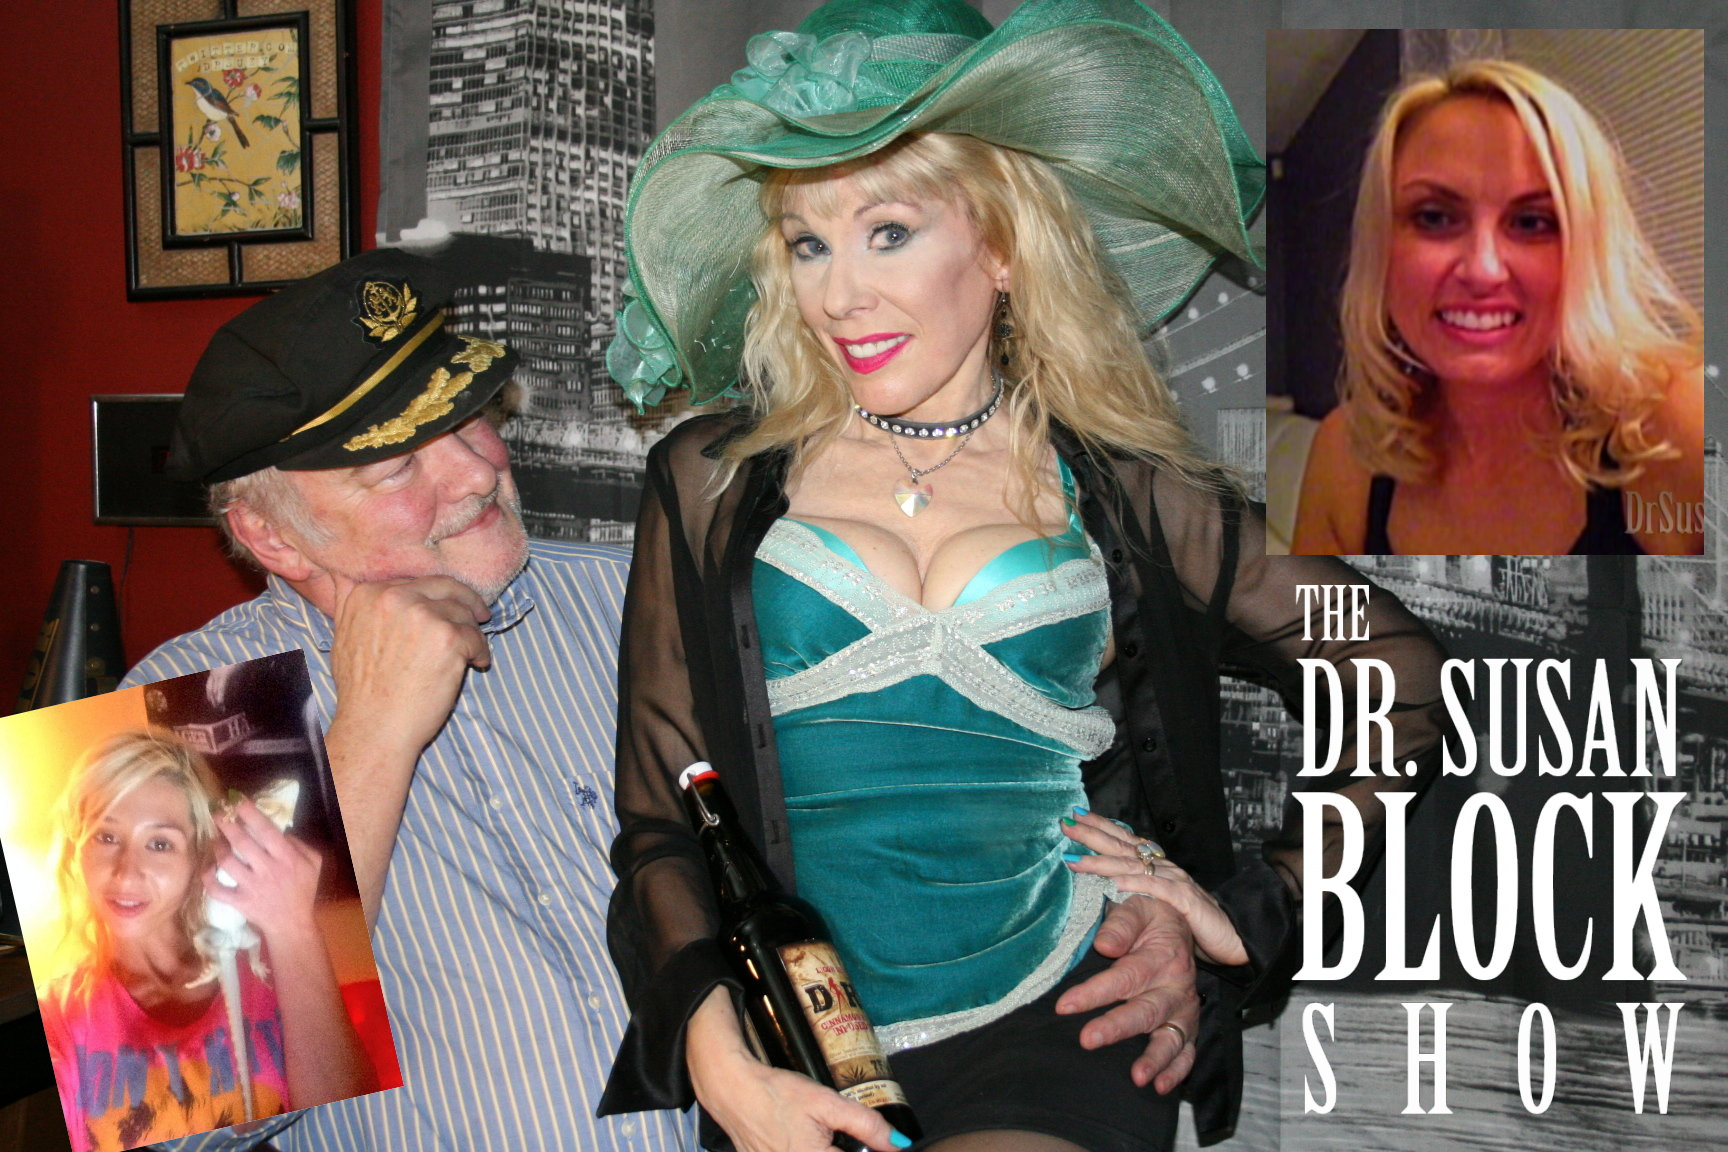 Catherine Imperio, Ricochet, Capt'n Max, Dr. Suzy (with Dirty Tequila) and Dr. Sarah Russo. Main Photo: L'Erotique